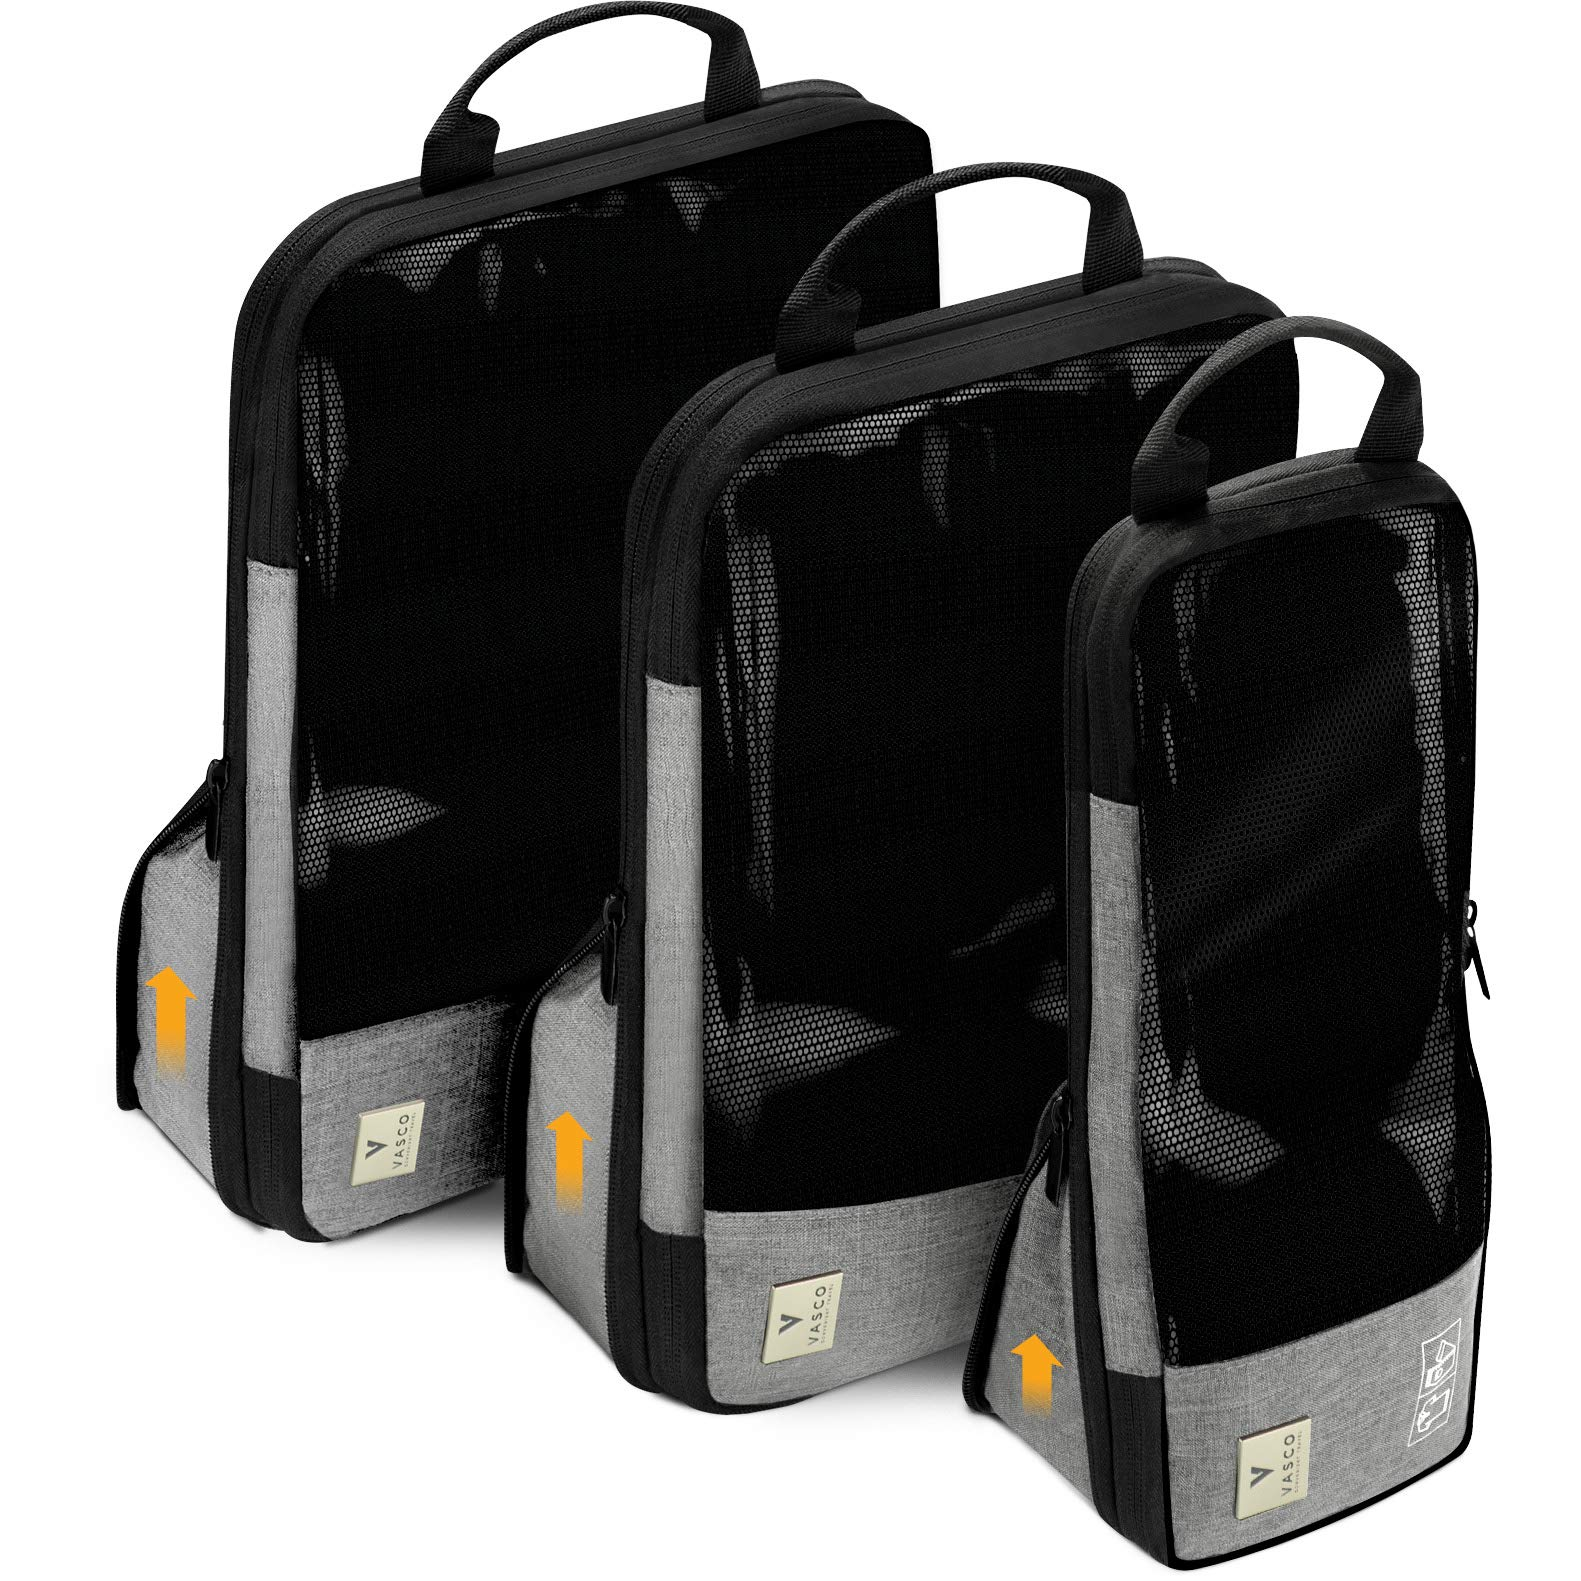 VASCO Compression Packing Cubes for Travel – Set of 3 Slim Packing Cubes by Vasco (Image #1)